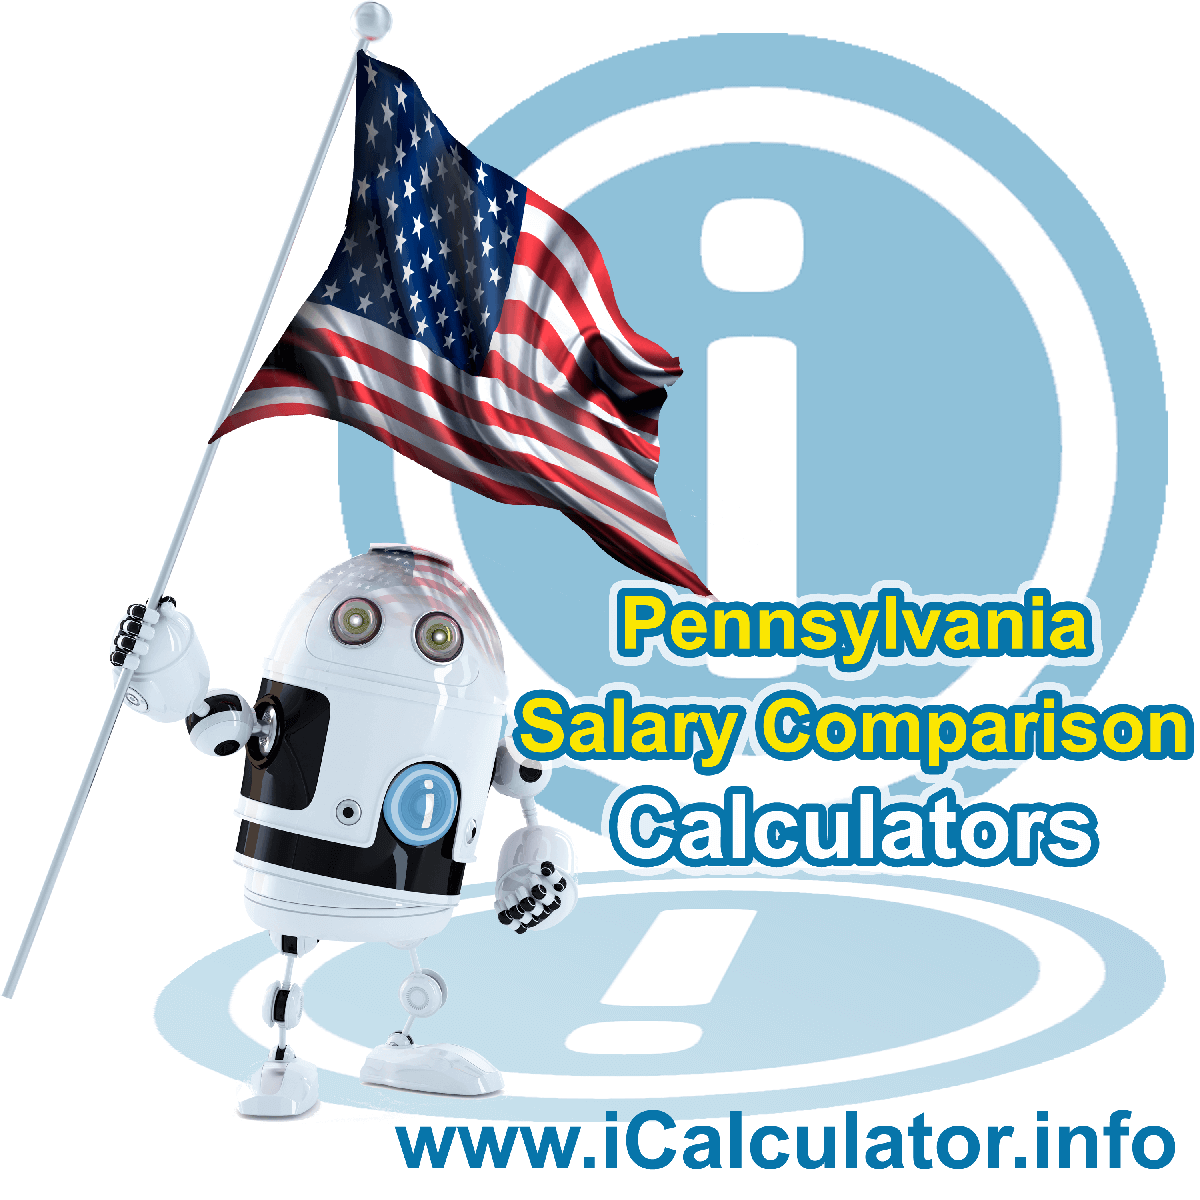 Pennsylvania Salary Comparison Calculator 2020 | iCalculator | The Pennsylvania Salary Comparison Calculator allows you to quickly calculate and compare upto 6 salaries in Pennsylvania or between other states for the 2020 tax year and historical tax years. Its an excellent tool for jobseekers, pay raise comparison and comparison of salaries between different US States